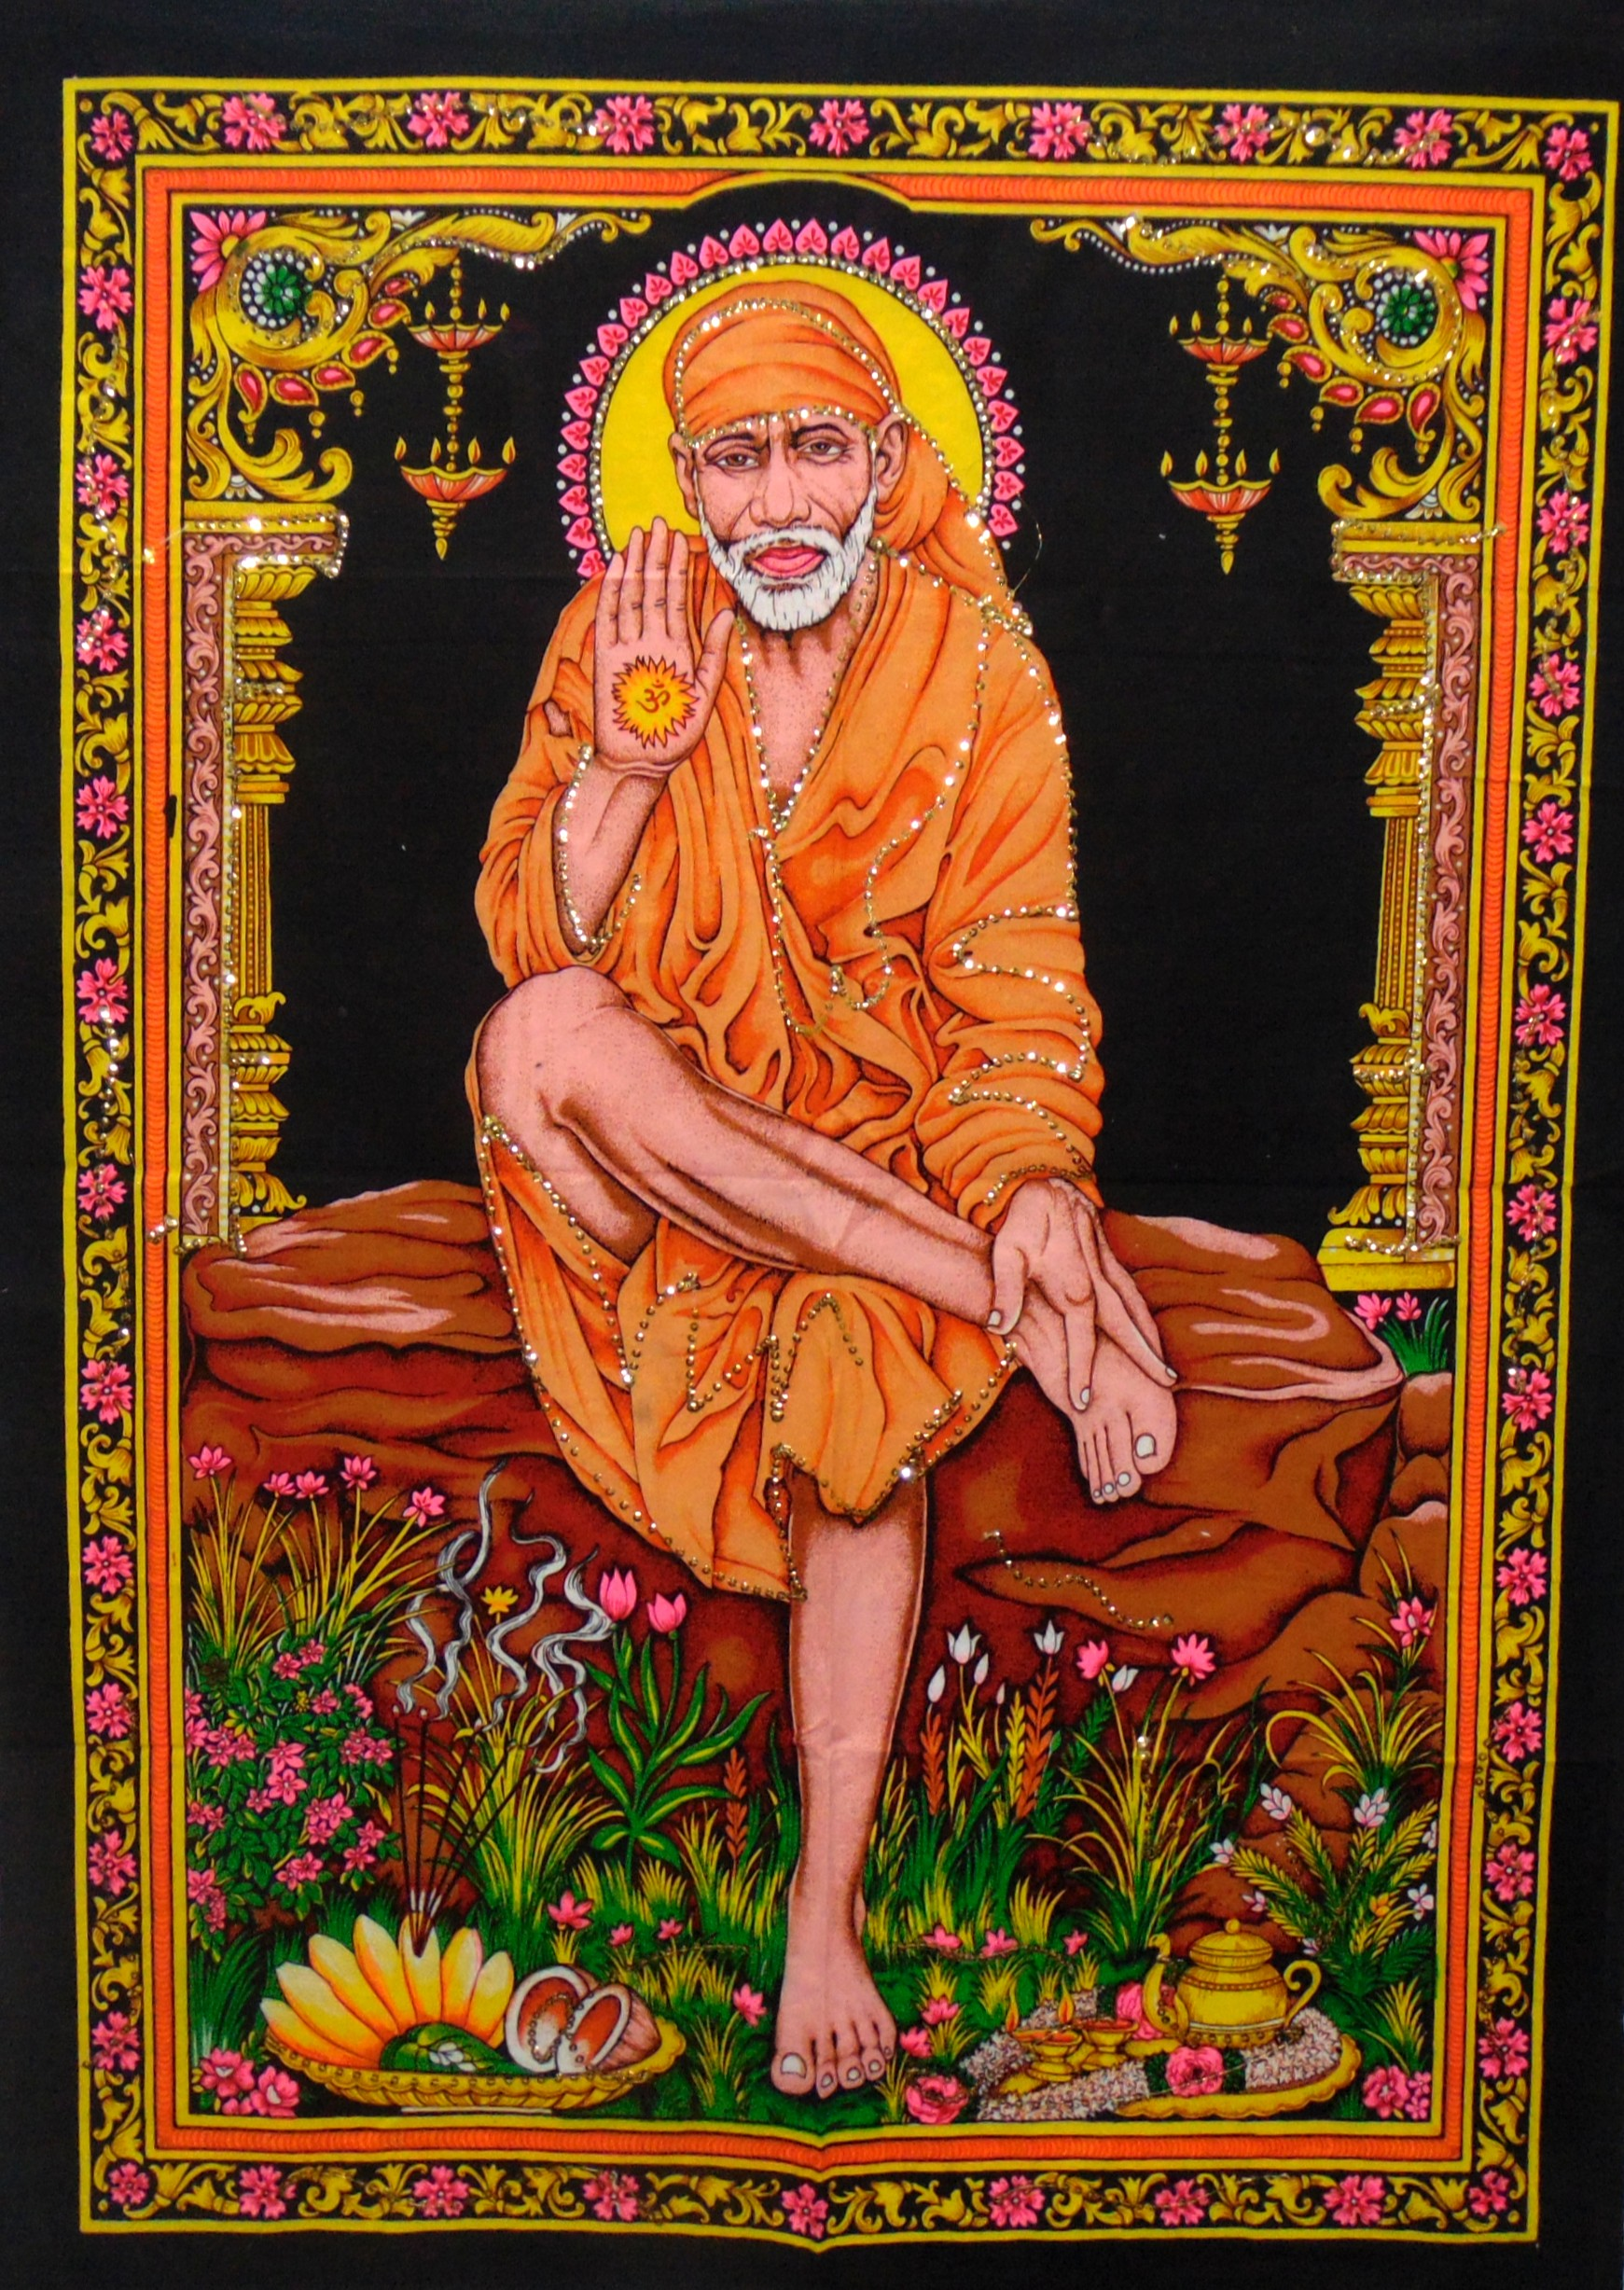 Heyrumbh Handicrafts Sai Baba Wall Hanging Tapestry Poster(Brush Paint Multi Color, 40 X 30 Inches)